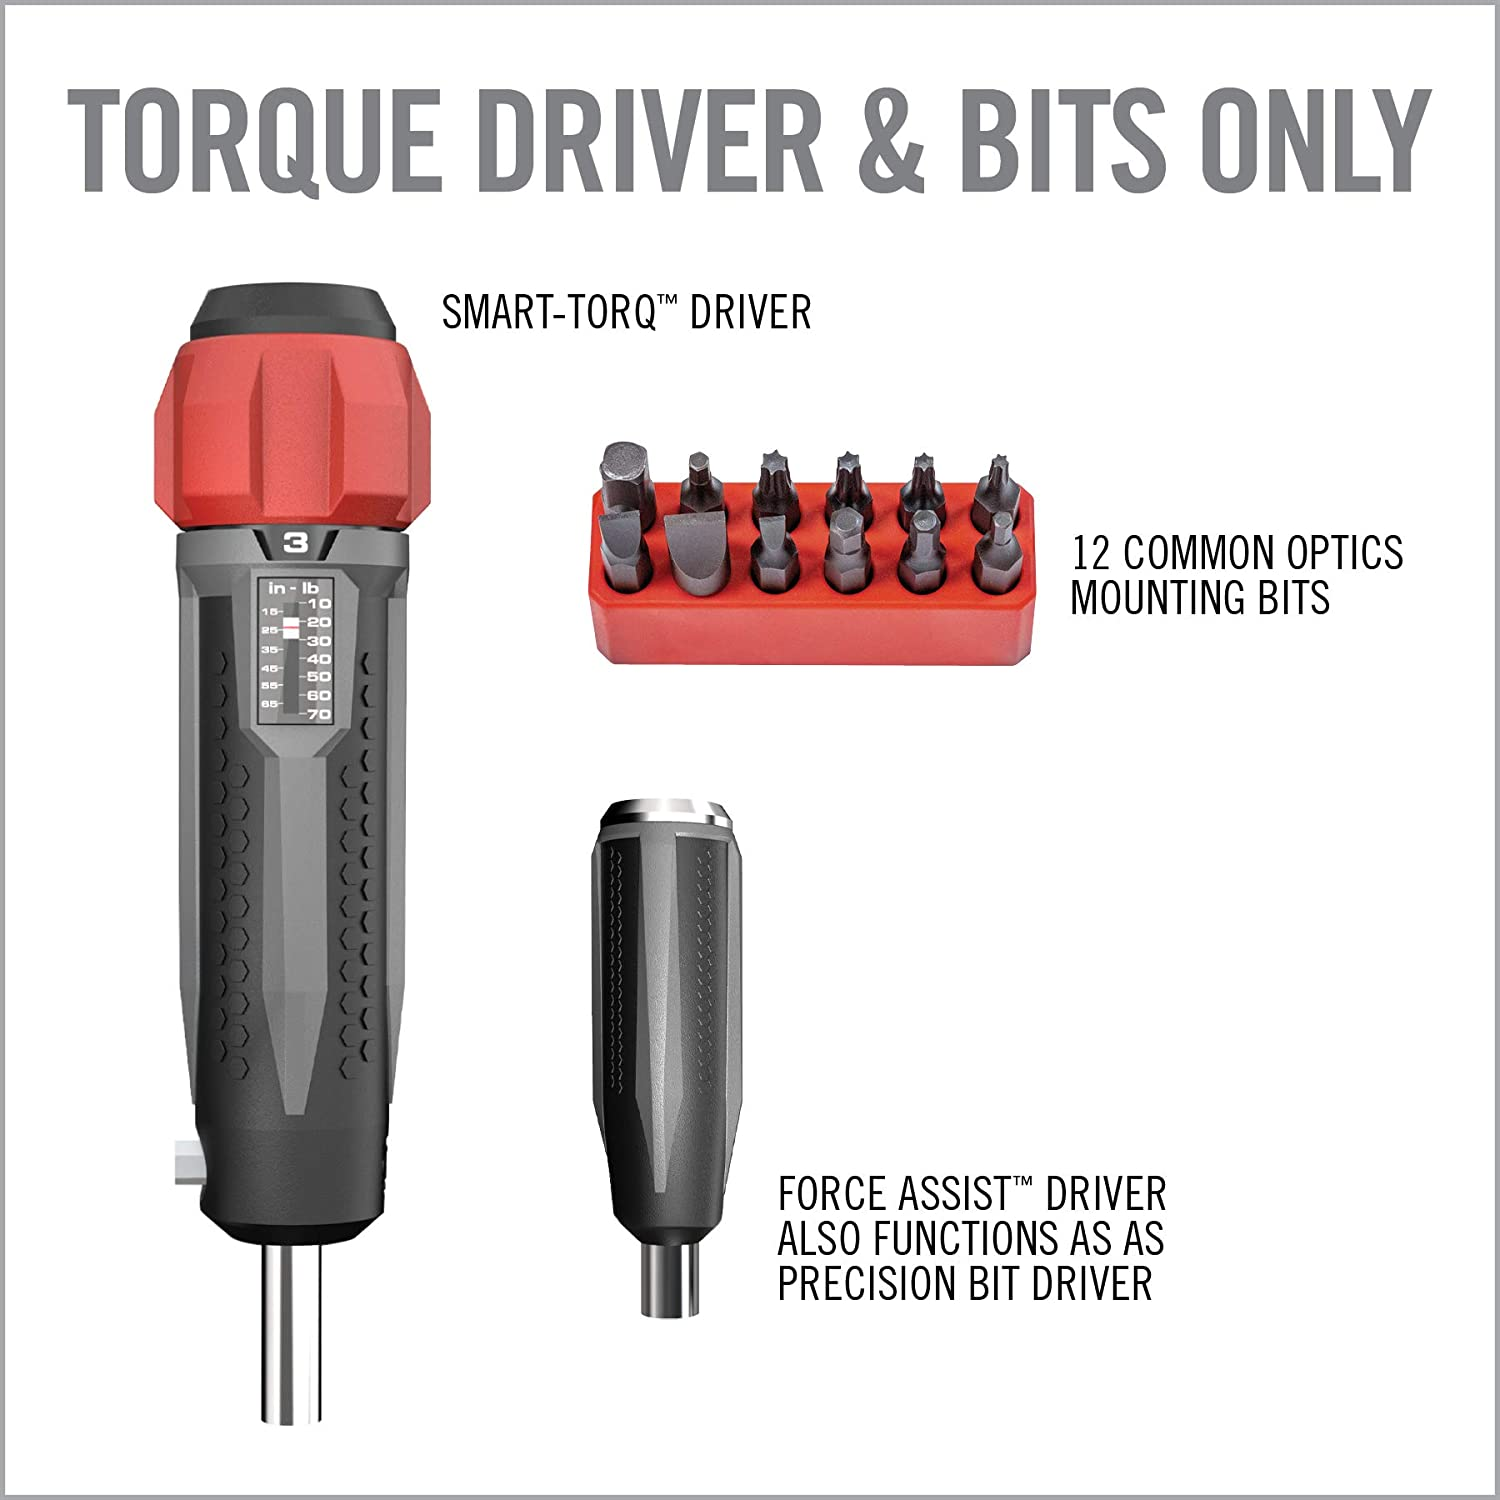 Force-Assist Technology and Set of Optics Mounting Bits Real Avid Smart Torq Torque Wrench Precision Torque Driver with Accurate 1 Inch//Pound Setting